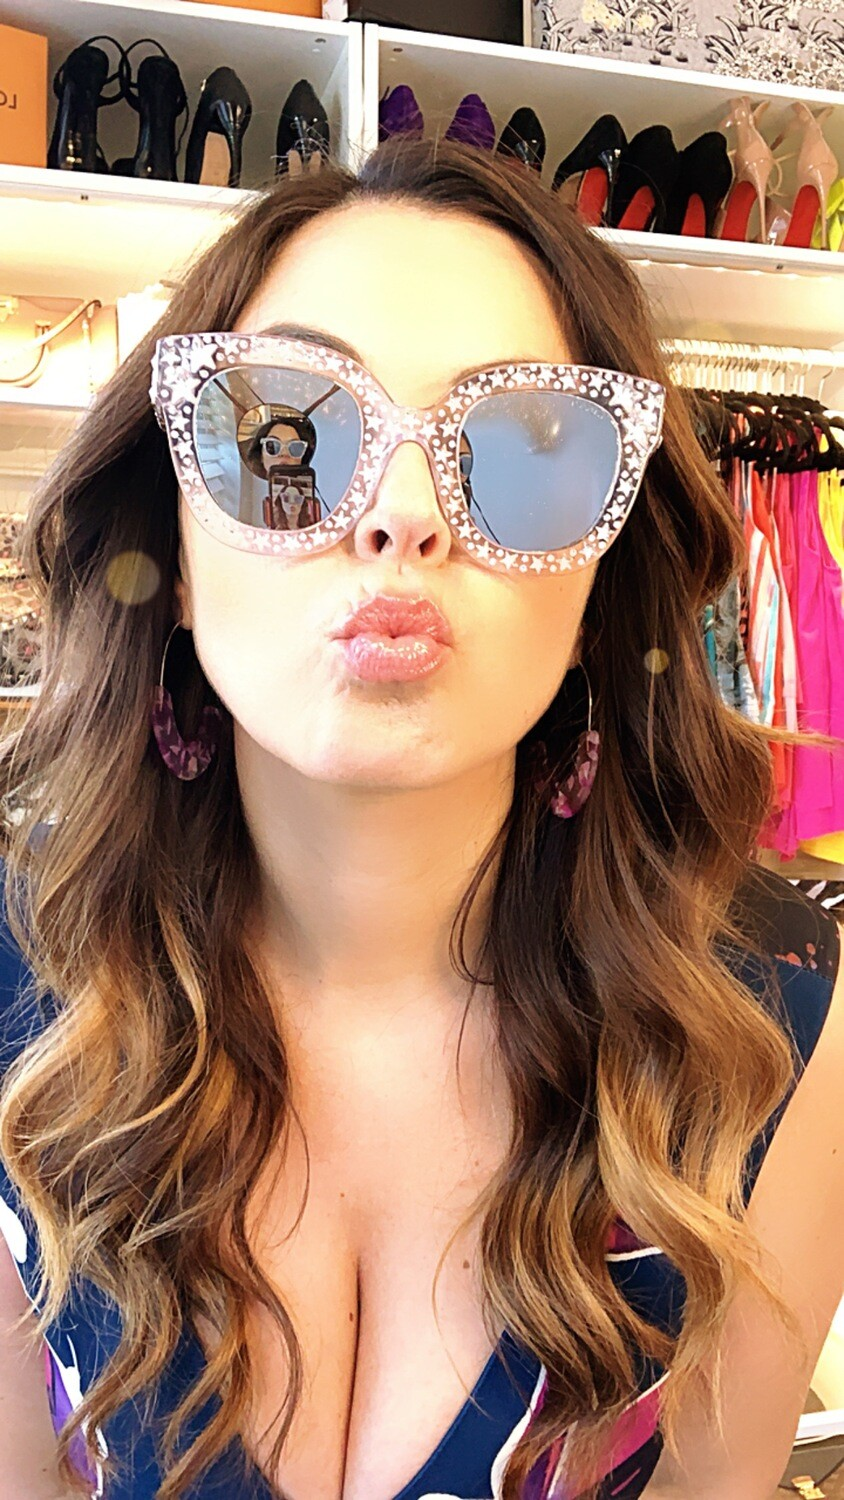 Gucci Clear Acetate Sunglasses With Stars and Swarovski crystals